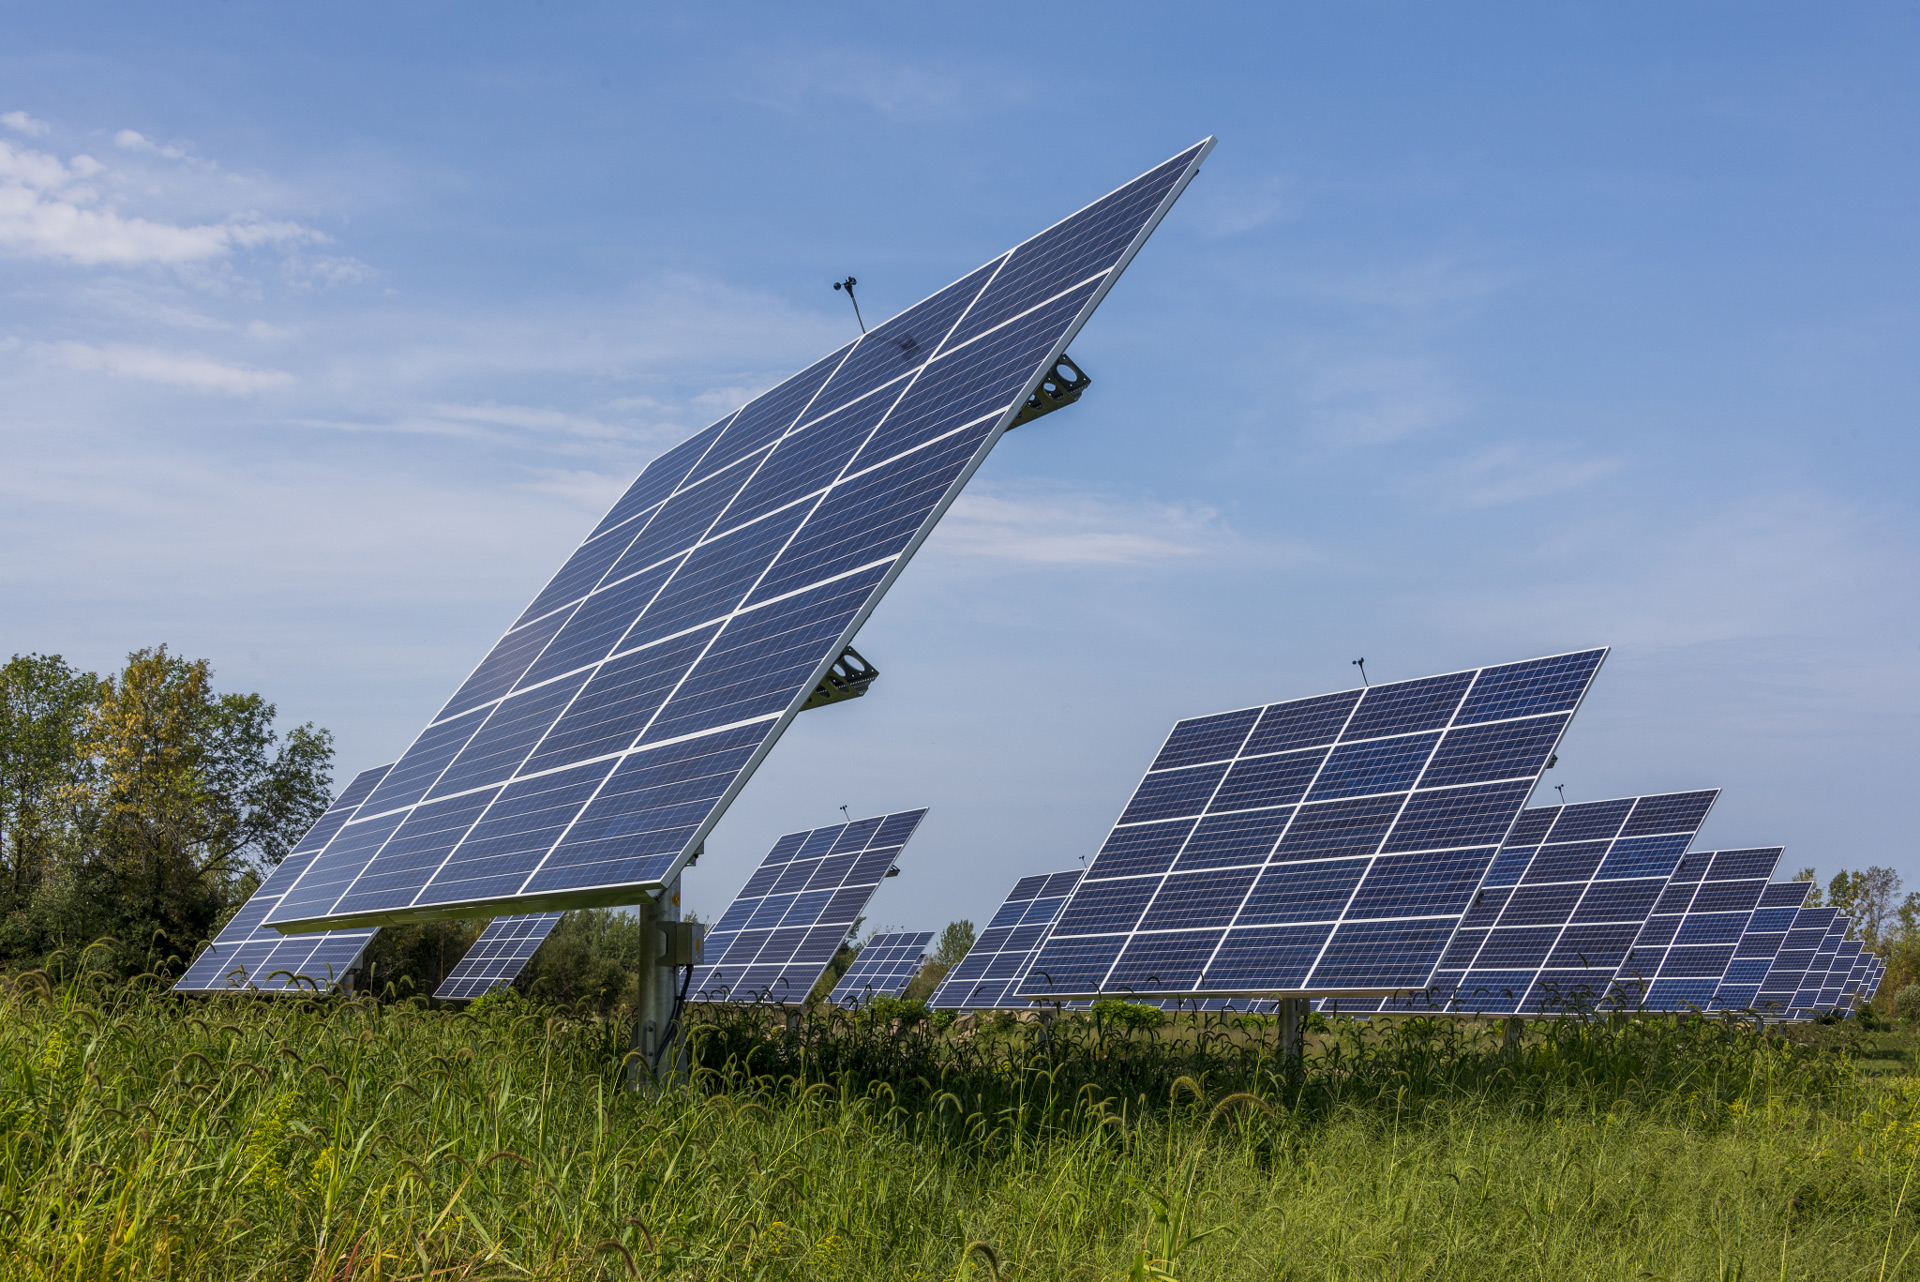 Commercial solar panels in a field